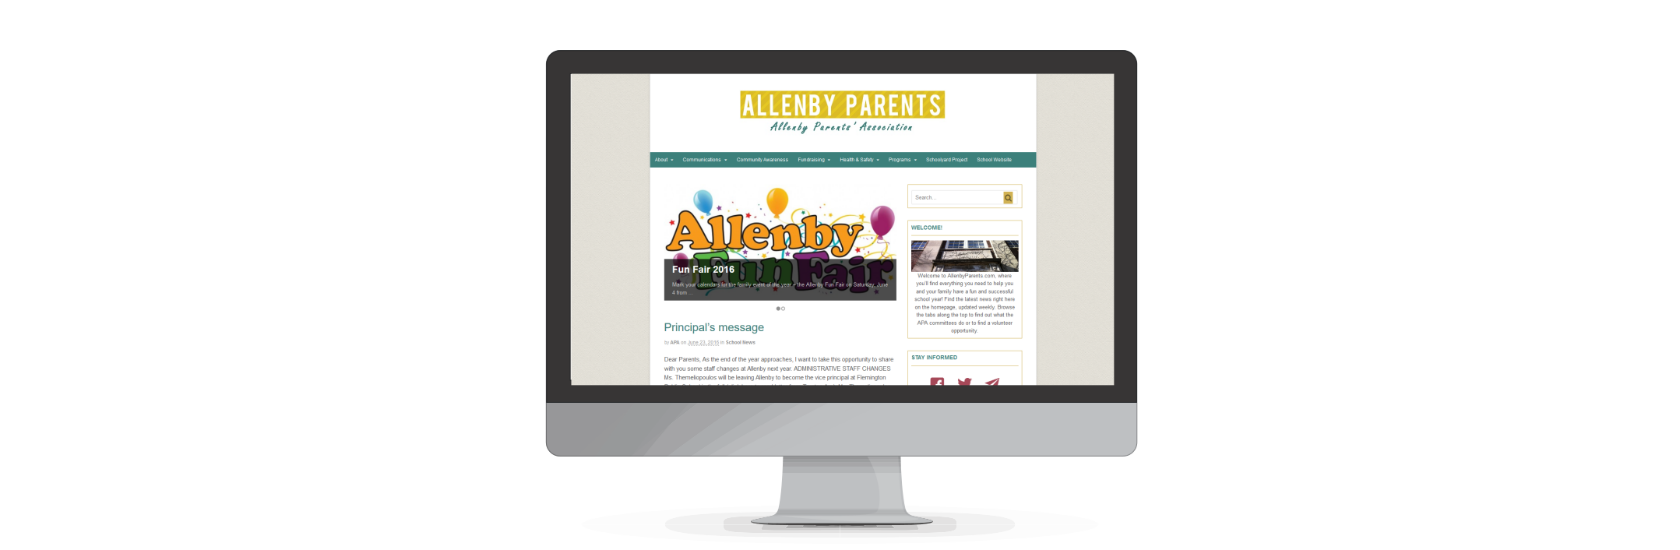 AllenbyParents, web design by www.puzzleboxcommunications.com